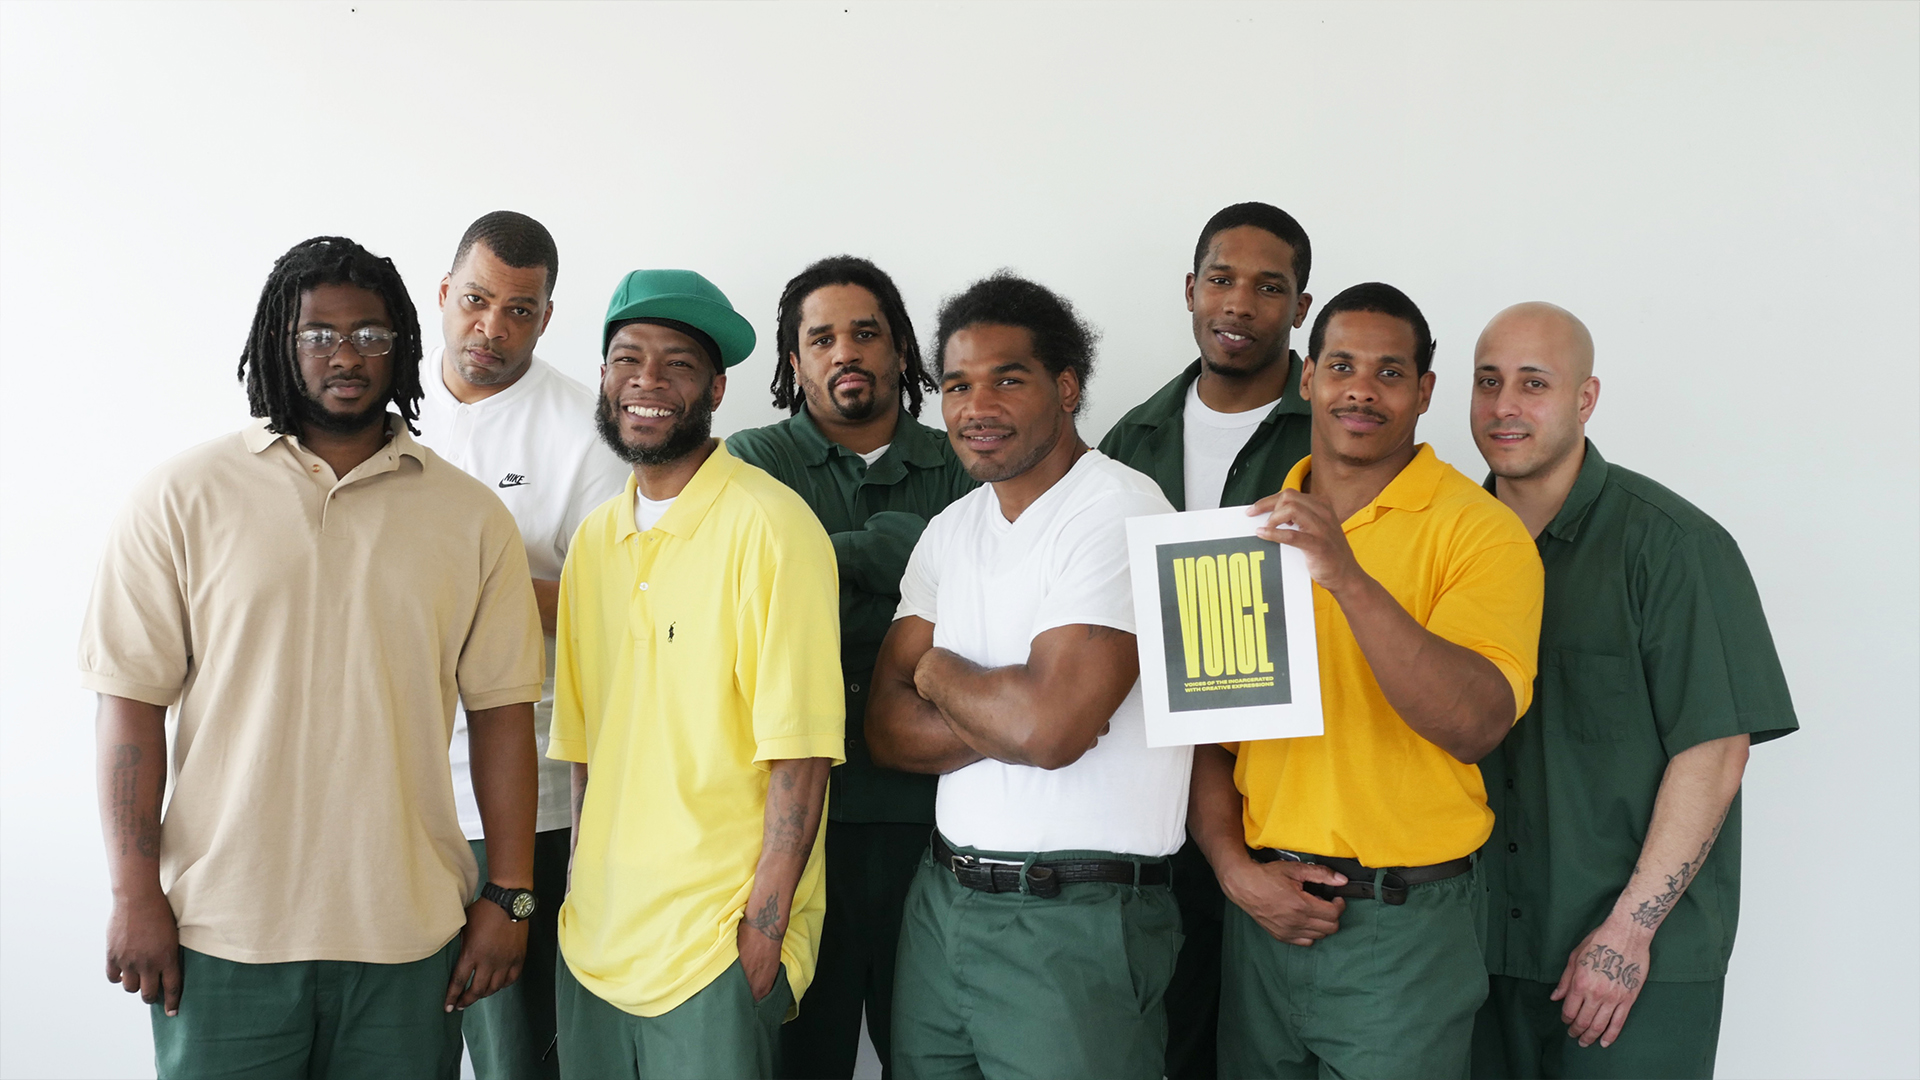 NYU students enrolled in Publication Course at Wallkill Correctional Facility